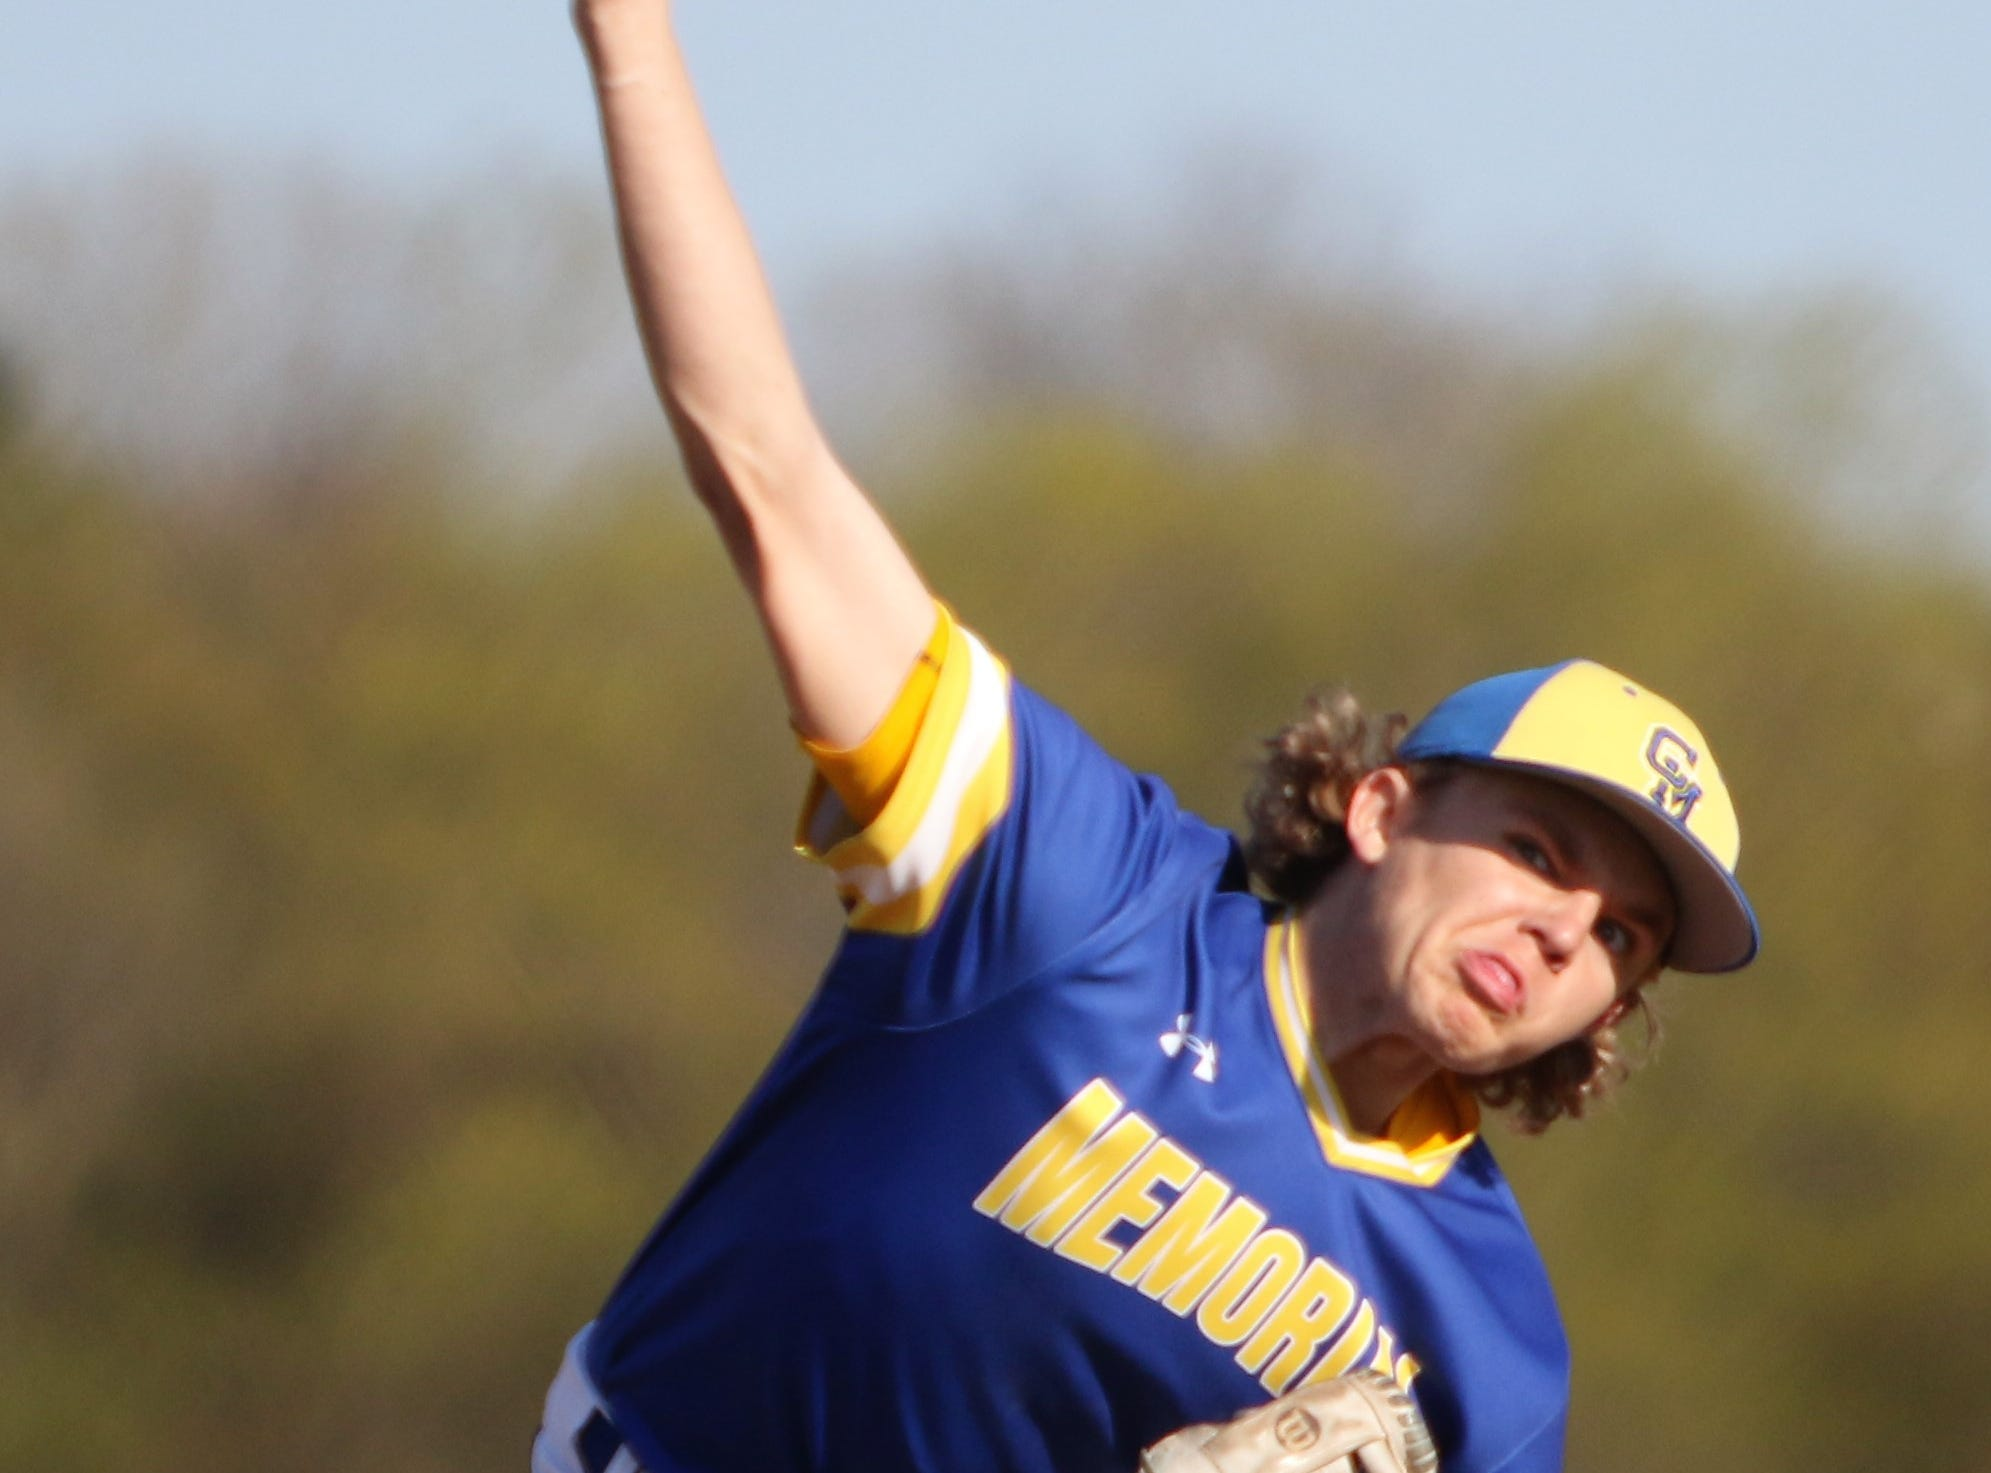 Catholic Memorial pitcher Kellan Short delivers a pitch against Kettle Moraine on May 13, 2019.